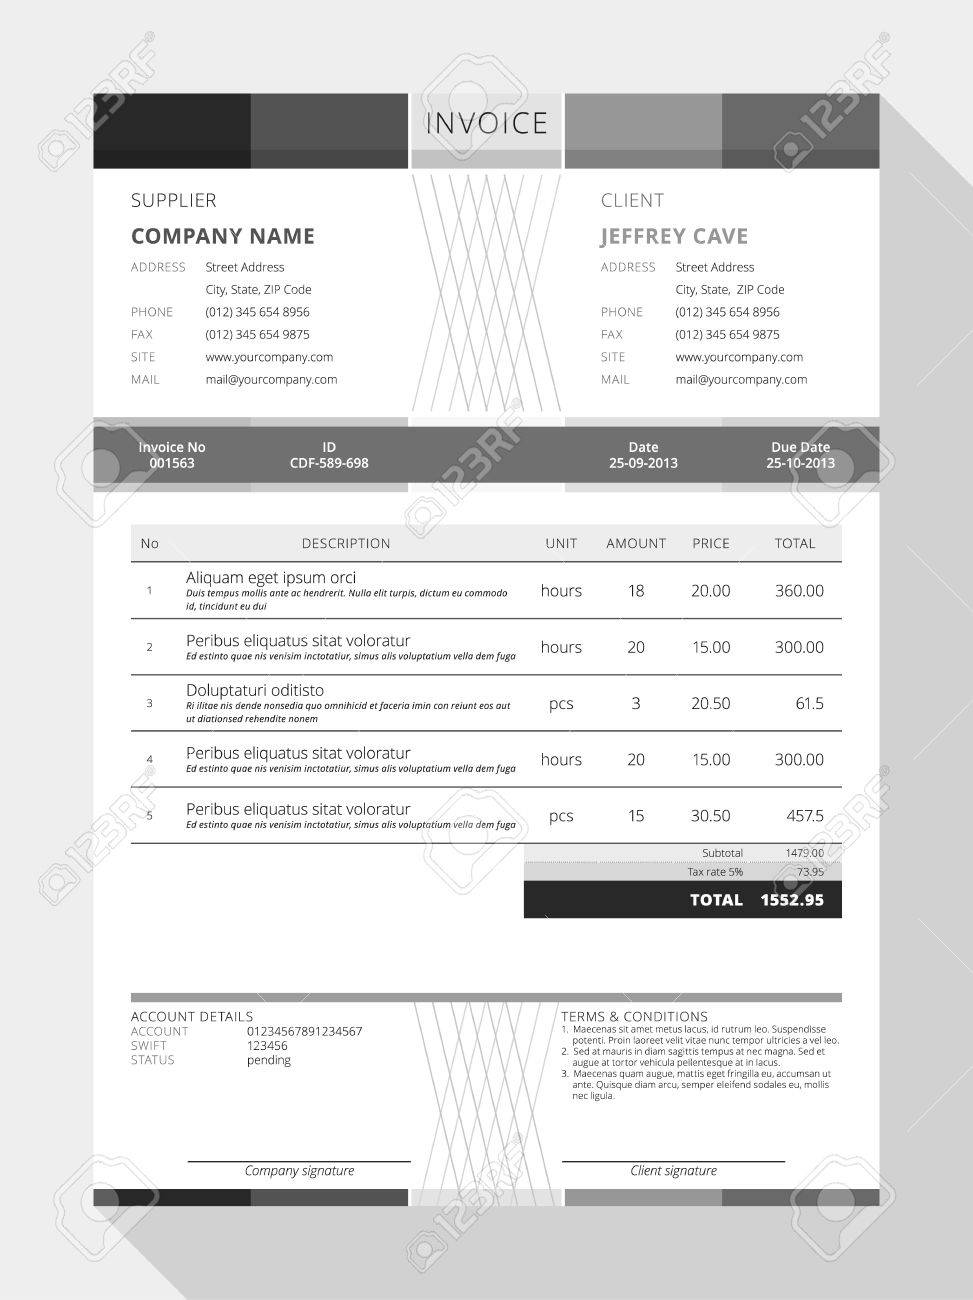 Imagerackus  Pretty Design An Invoice  Professional Graphic Design Invoice  With Fair Vector Customizable Invoice Form Template Design Vector   Design An Invoice With Attractive Cash Receipt Pdf Also Create A Receipt Online In Addition Receipt Generator Online And Jackson County Missouri Personal Property Tax Receipt As Well As Request Return Receipt Additionally Carbon Copy Receipts From Happytomco With Imagerackus  Fair Design An Invoice  Professional Graphic Design Invoice  With Attractive Vector Customizable Invoice Form Template Design Vector   Design An Invoice And Pretty Cash Receipt Pdf Also Create A Receipt Online In Addition Receipt Generator Online From Happytomco